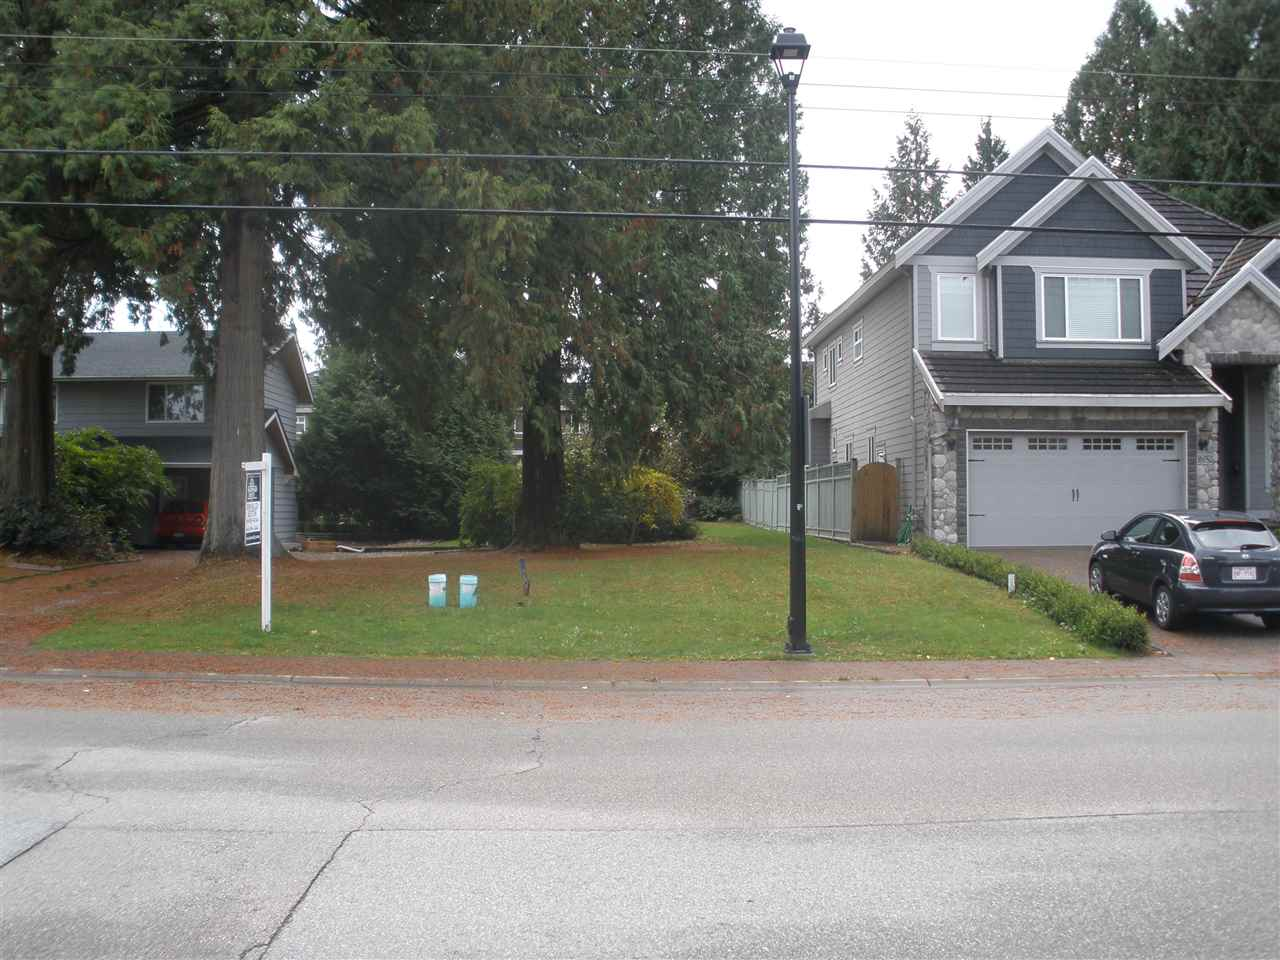 Wowsers! Extremely rare  level building Lot, extra deep south facing rear yard. Ready for building permit application... 8016 Sq Foot, front facing north, fully serviced and across from a peaceful ,quiet park in prestigious Fraser Heights. Lot will accommodate a three level home. Fifty feet frontage.Very close to schools, shopping and parks. There may be nice mountain views from second story of a new home? Existing trees are being removed.  Compliance Deposit is $22,500. For plan review & plan approval, Design Consultant is Tynan Consulting Ltd. There is an ESC approval fee of $500.00 Purchaser.